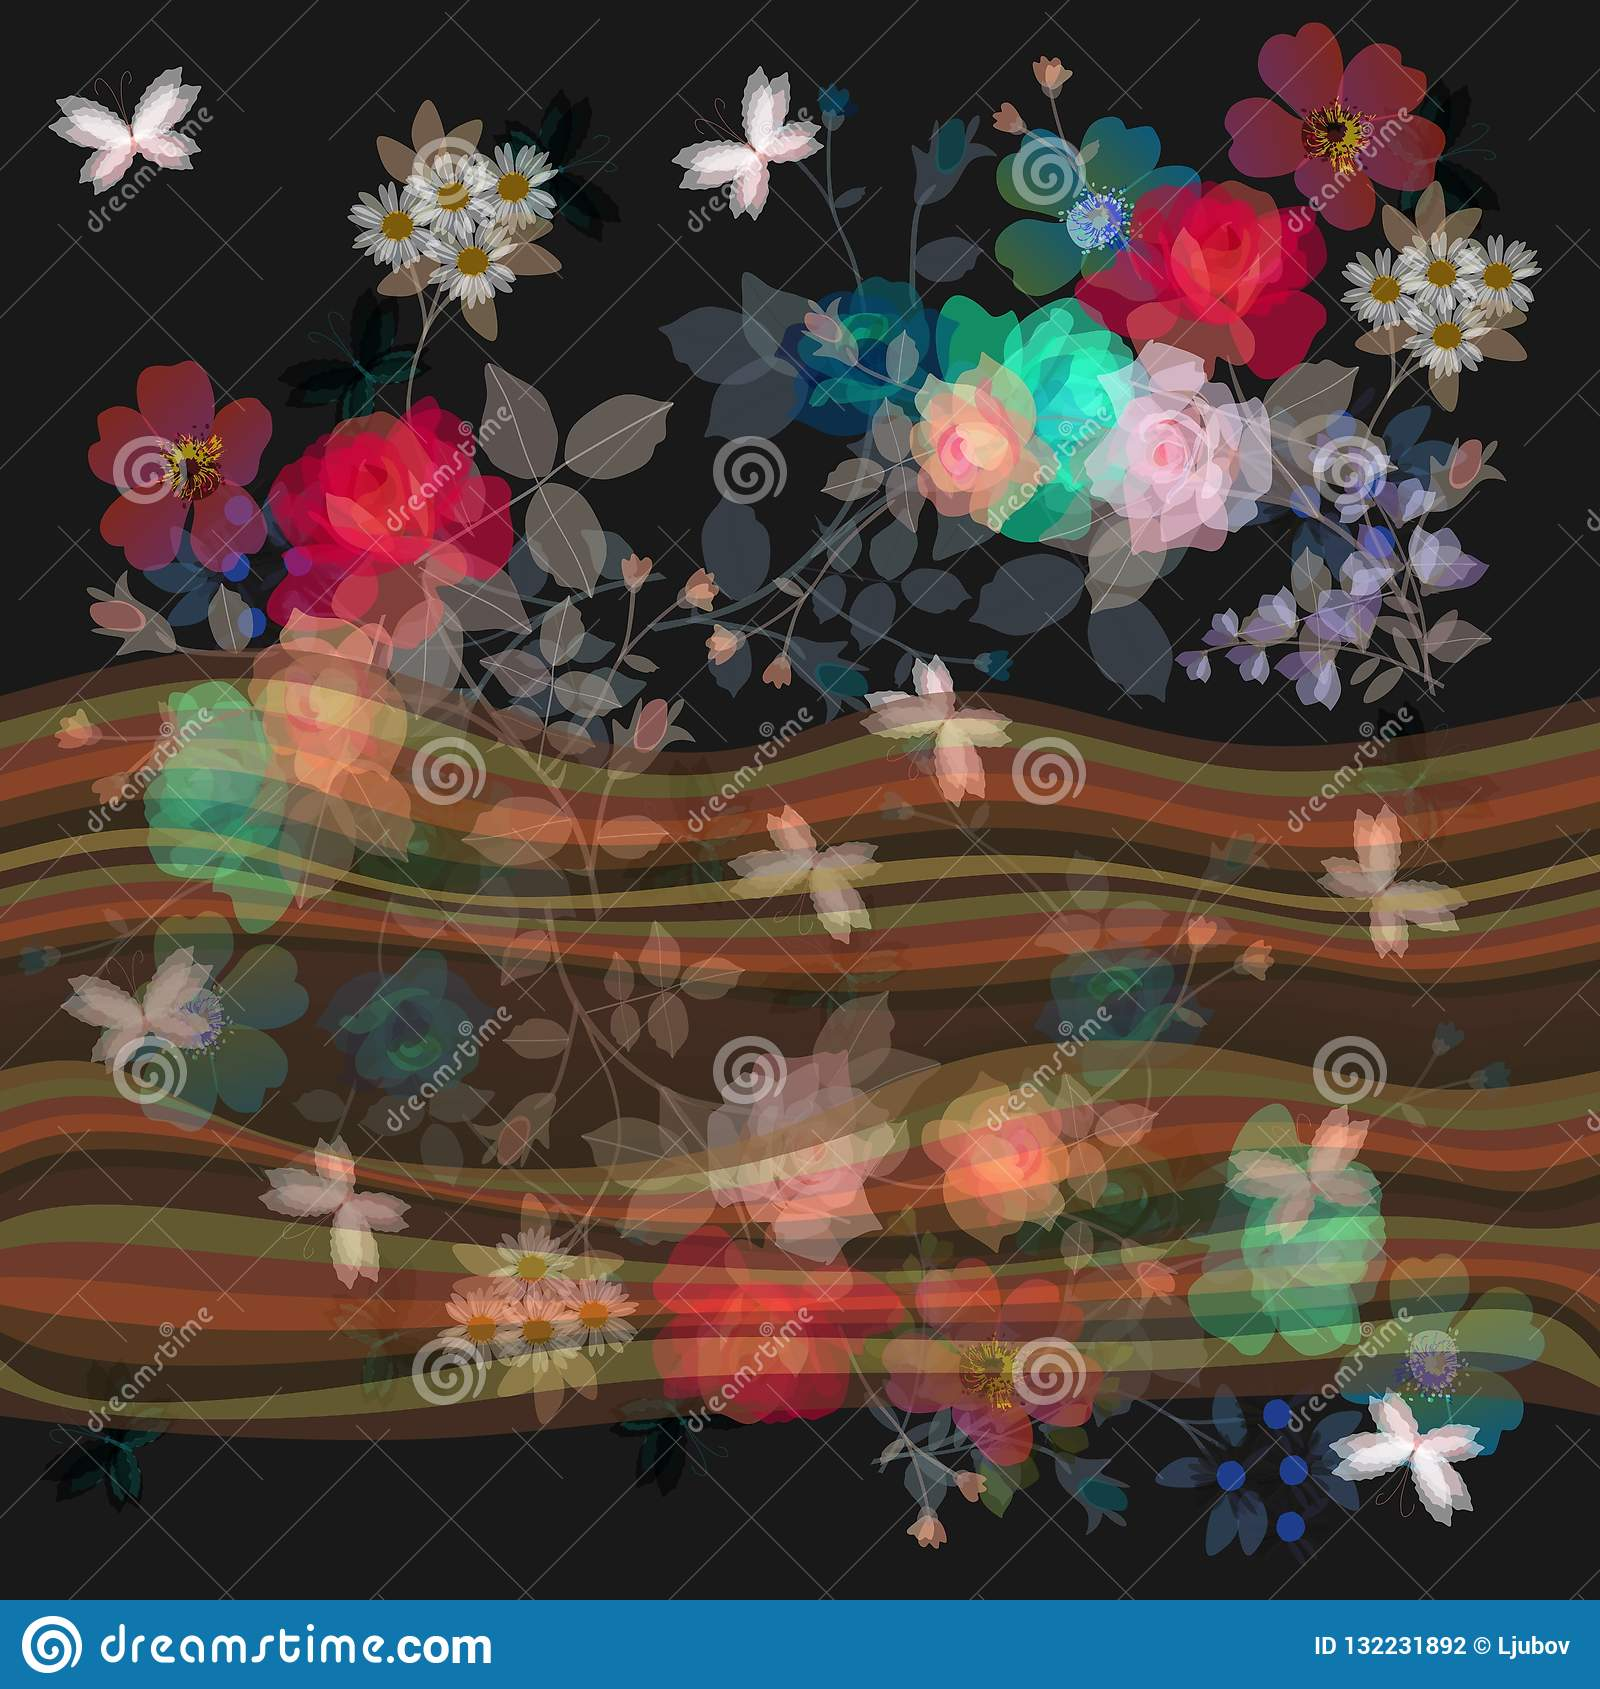 Seamless floral border with waves and transparency bouquets of gardening flowers.